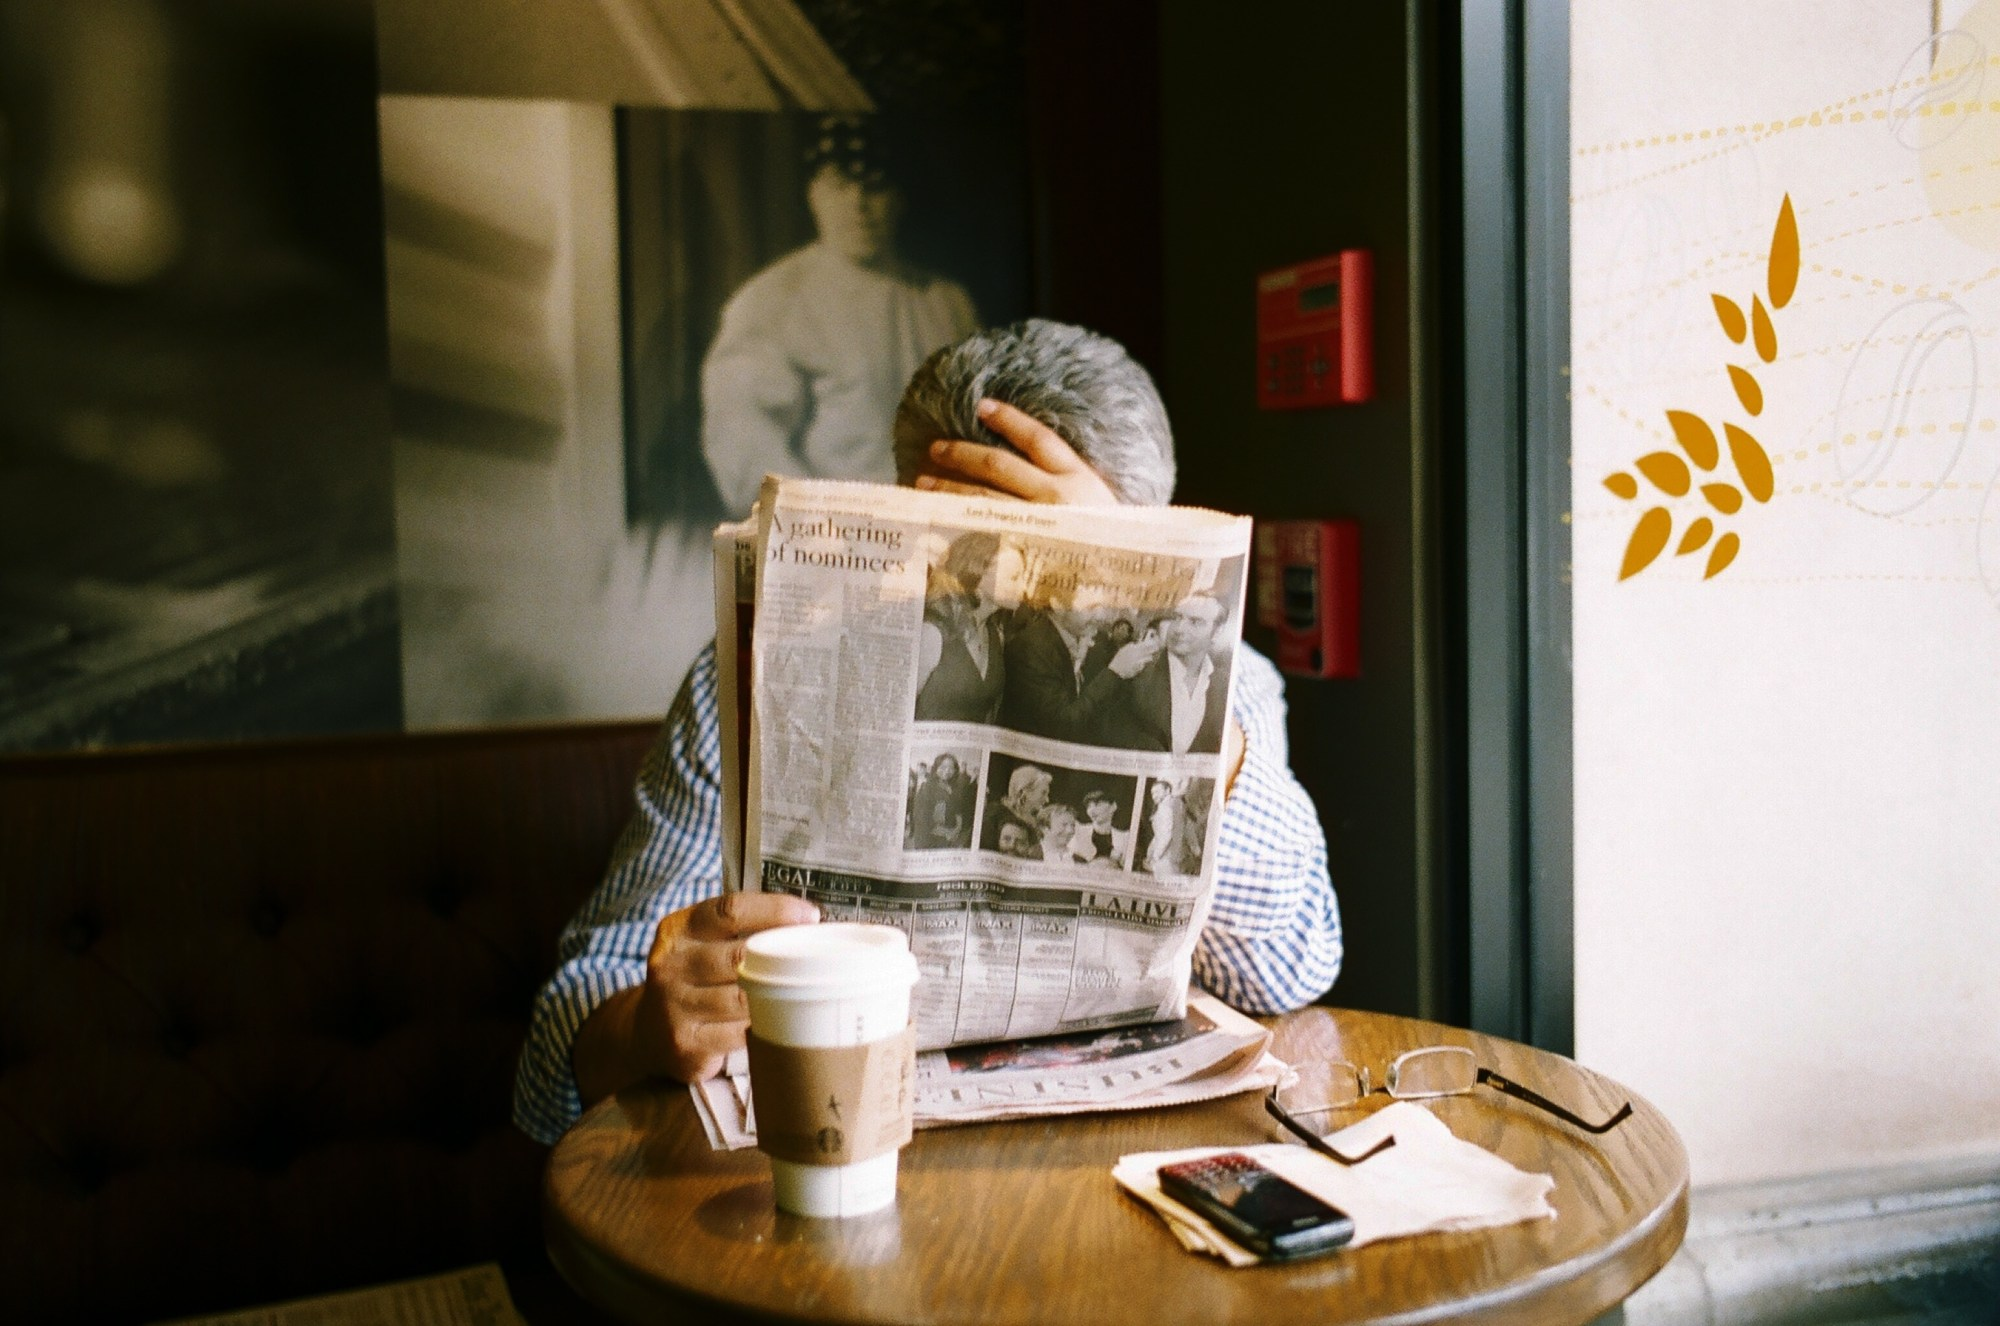 Natural light, listening to the light meter. Leica M6 + Leica Summicron 35mm f2 ASPH + Kodak Portra 400. Man with newspaper. Beverly Hills, 2012. Leica M6, 35mm lens, Kodak Portra 400. Shot around 1.5 meters.